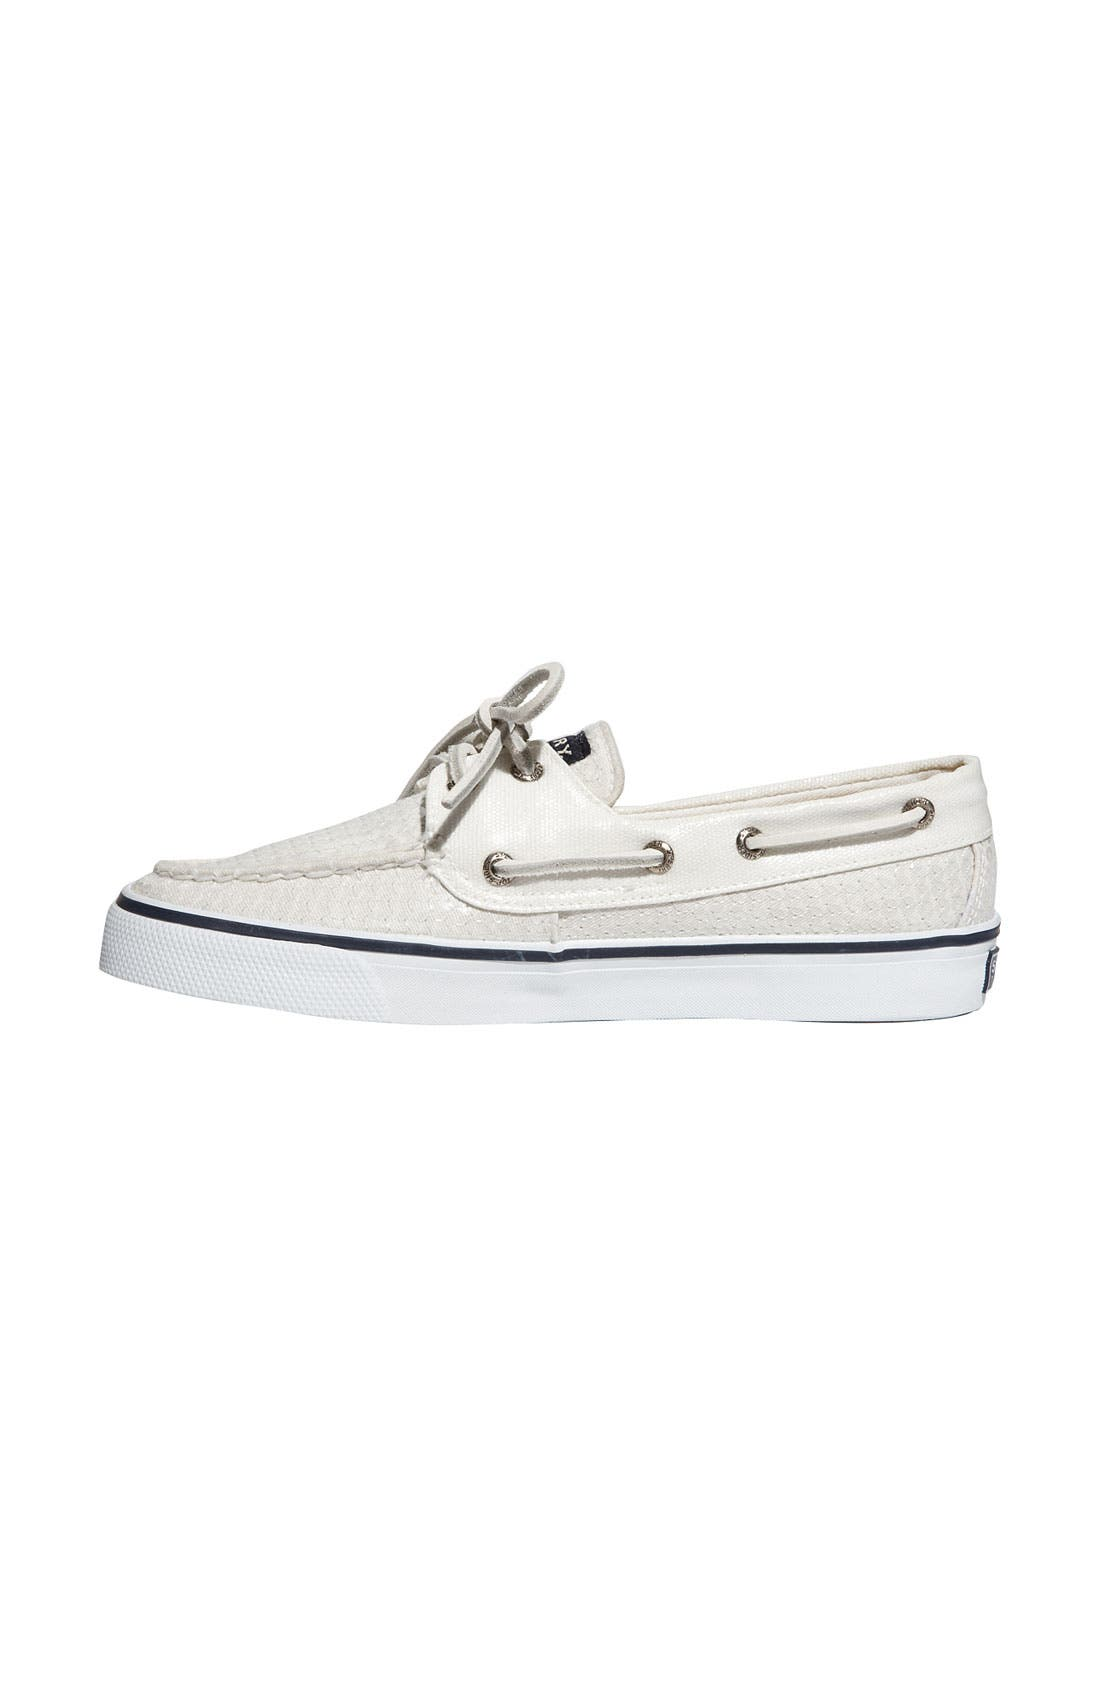 Top-Sider<sup>®</sup> 'Bahama' Sequined Boat Shoe,                             Alternate thumbnail 97, color,